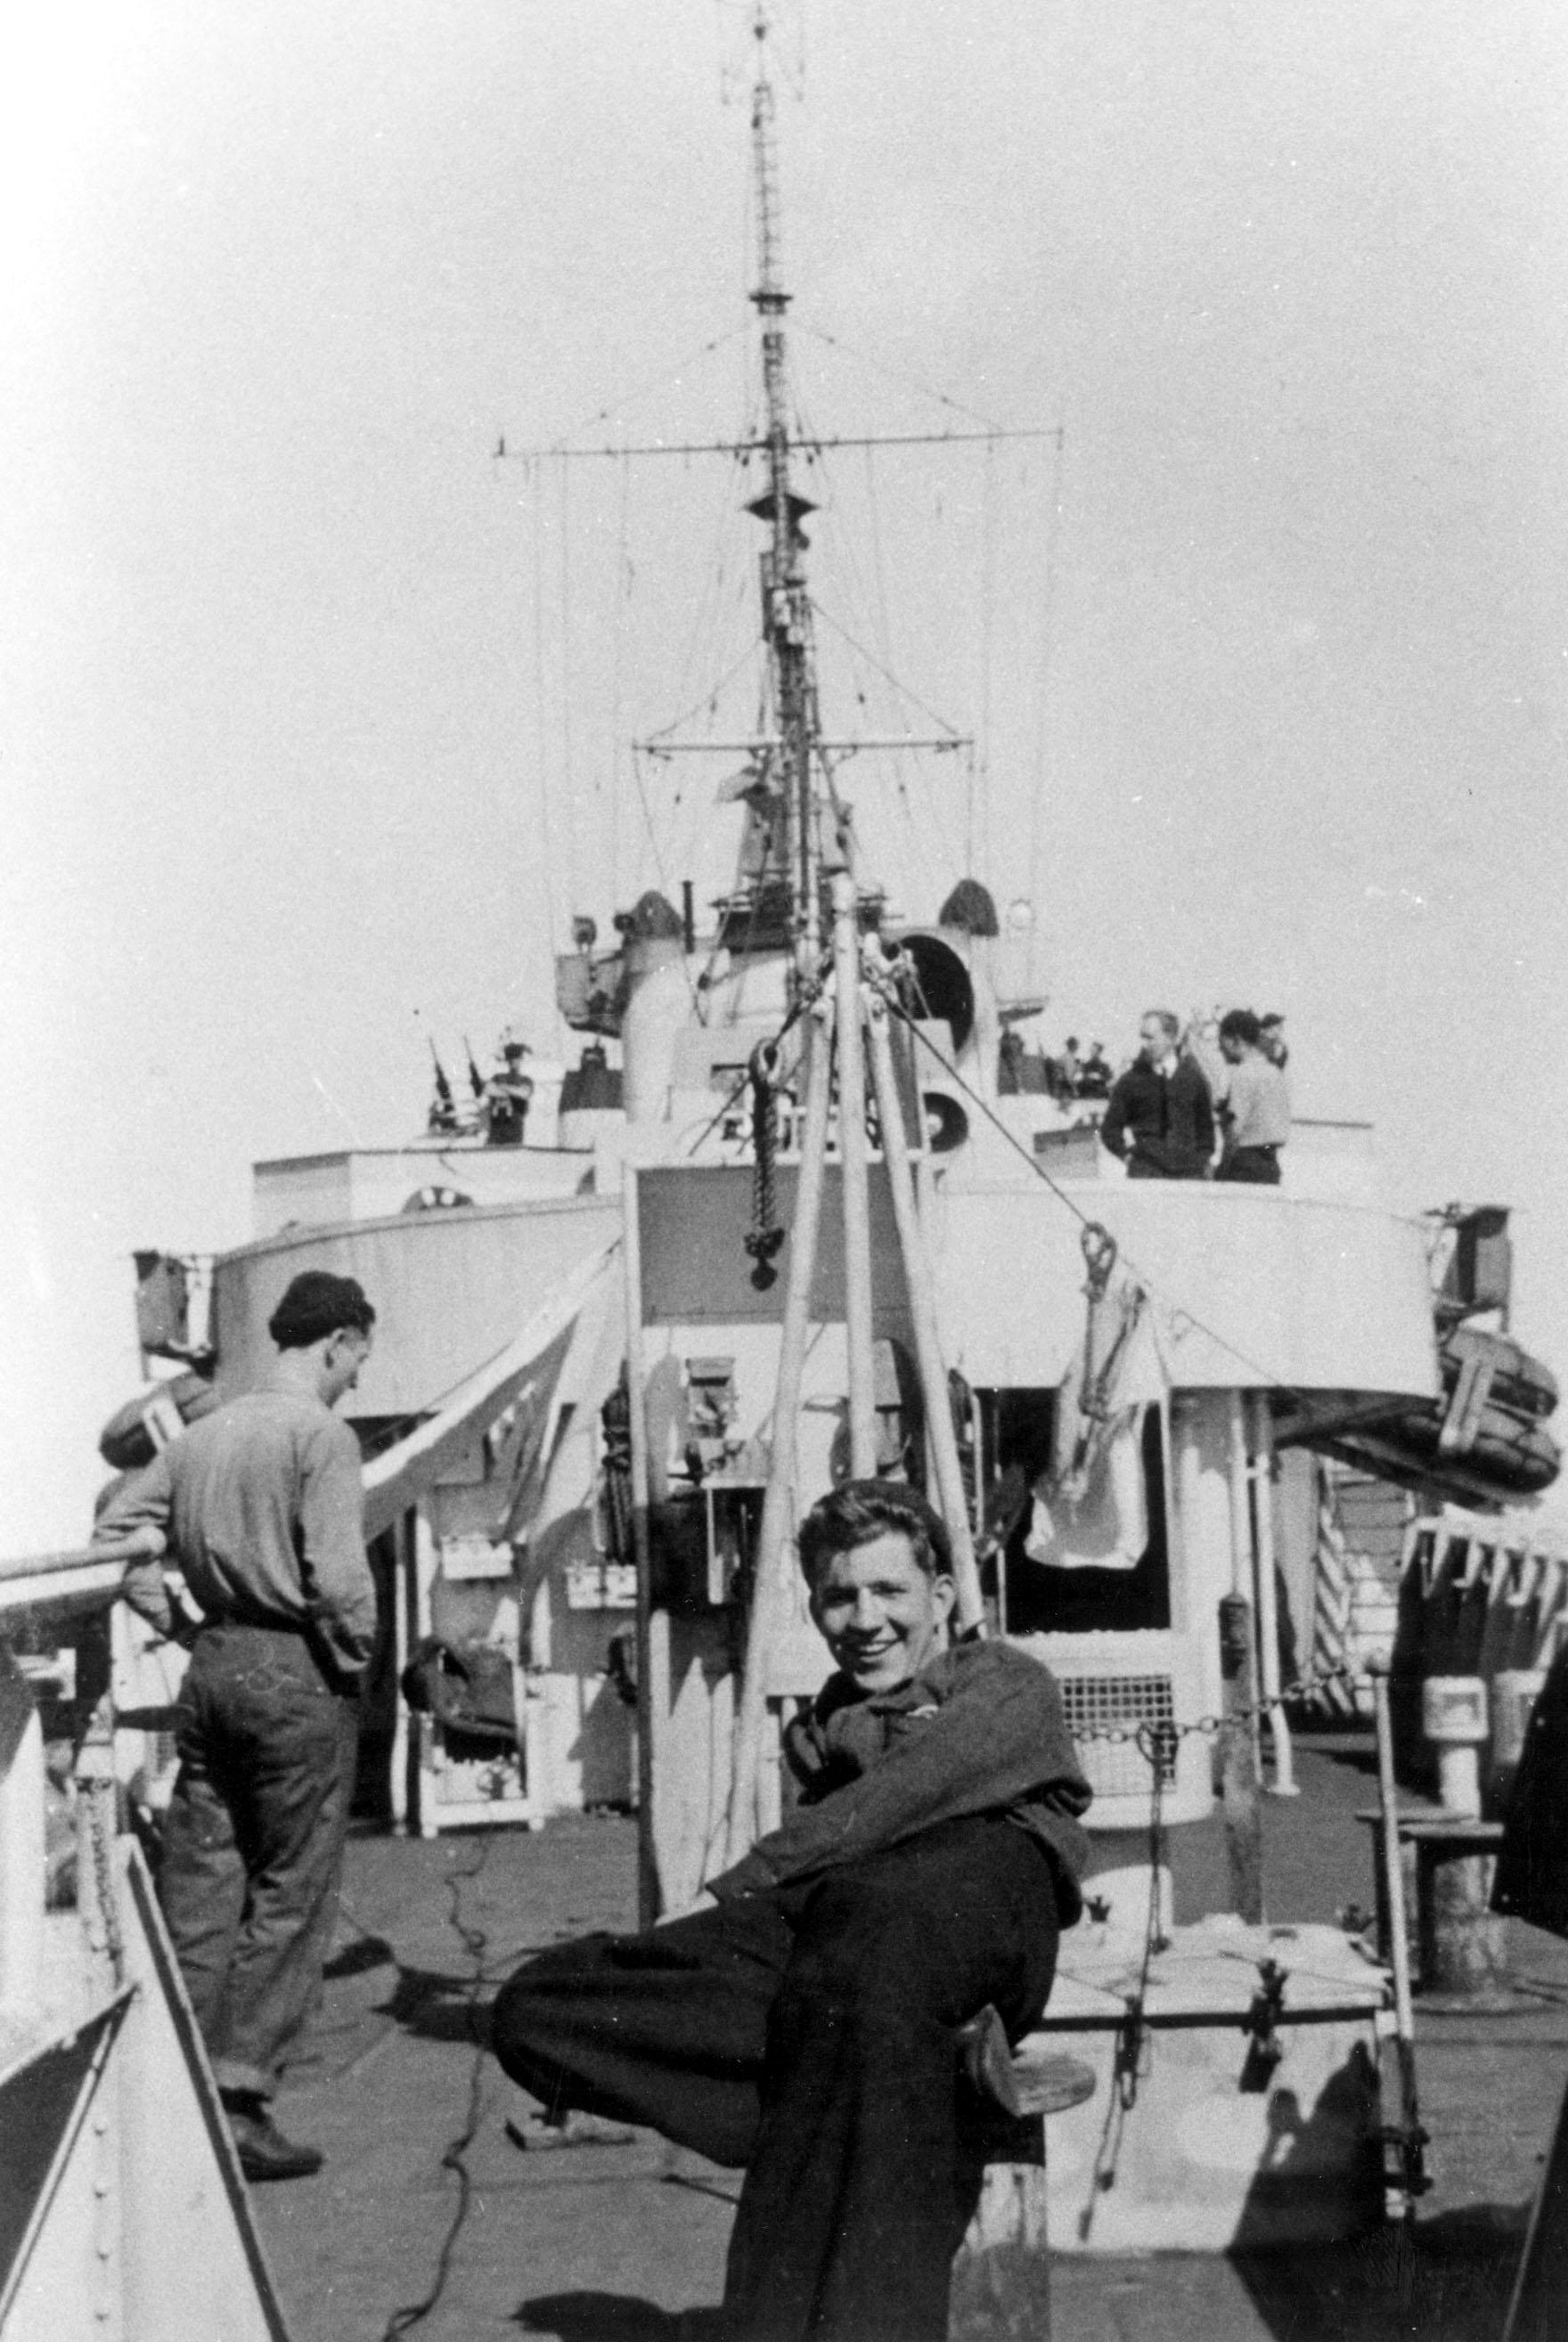 Sailors on HMCS Longueuil. Longueuil was commissioned on 18 May 1944. She spent her entire wartime career on convoy duty and for varying periods was Senior Officer's ship of her group.